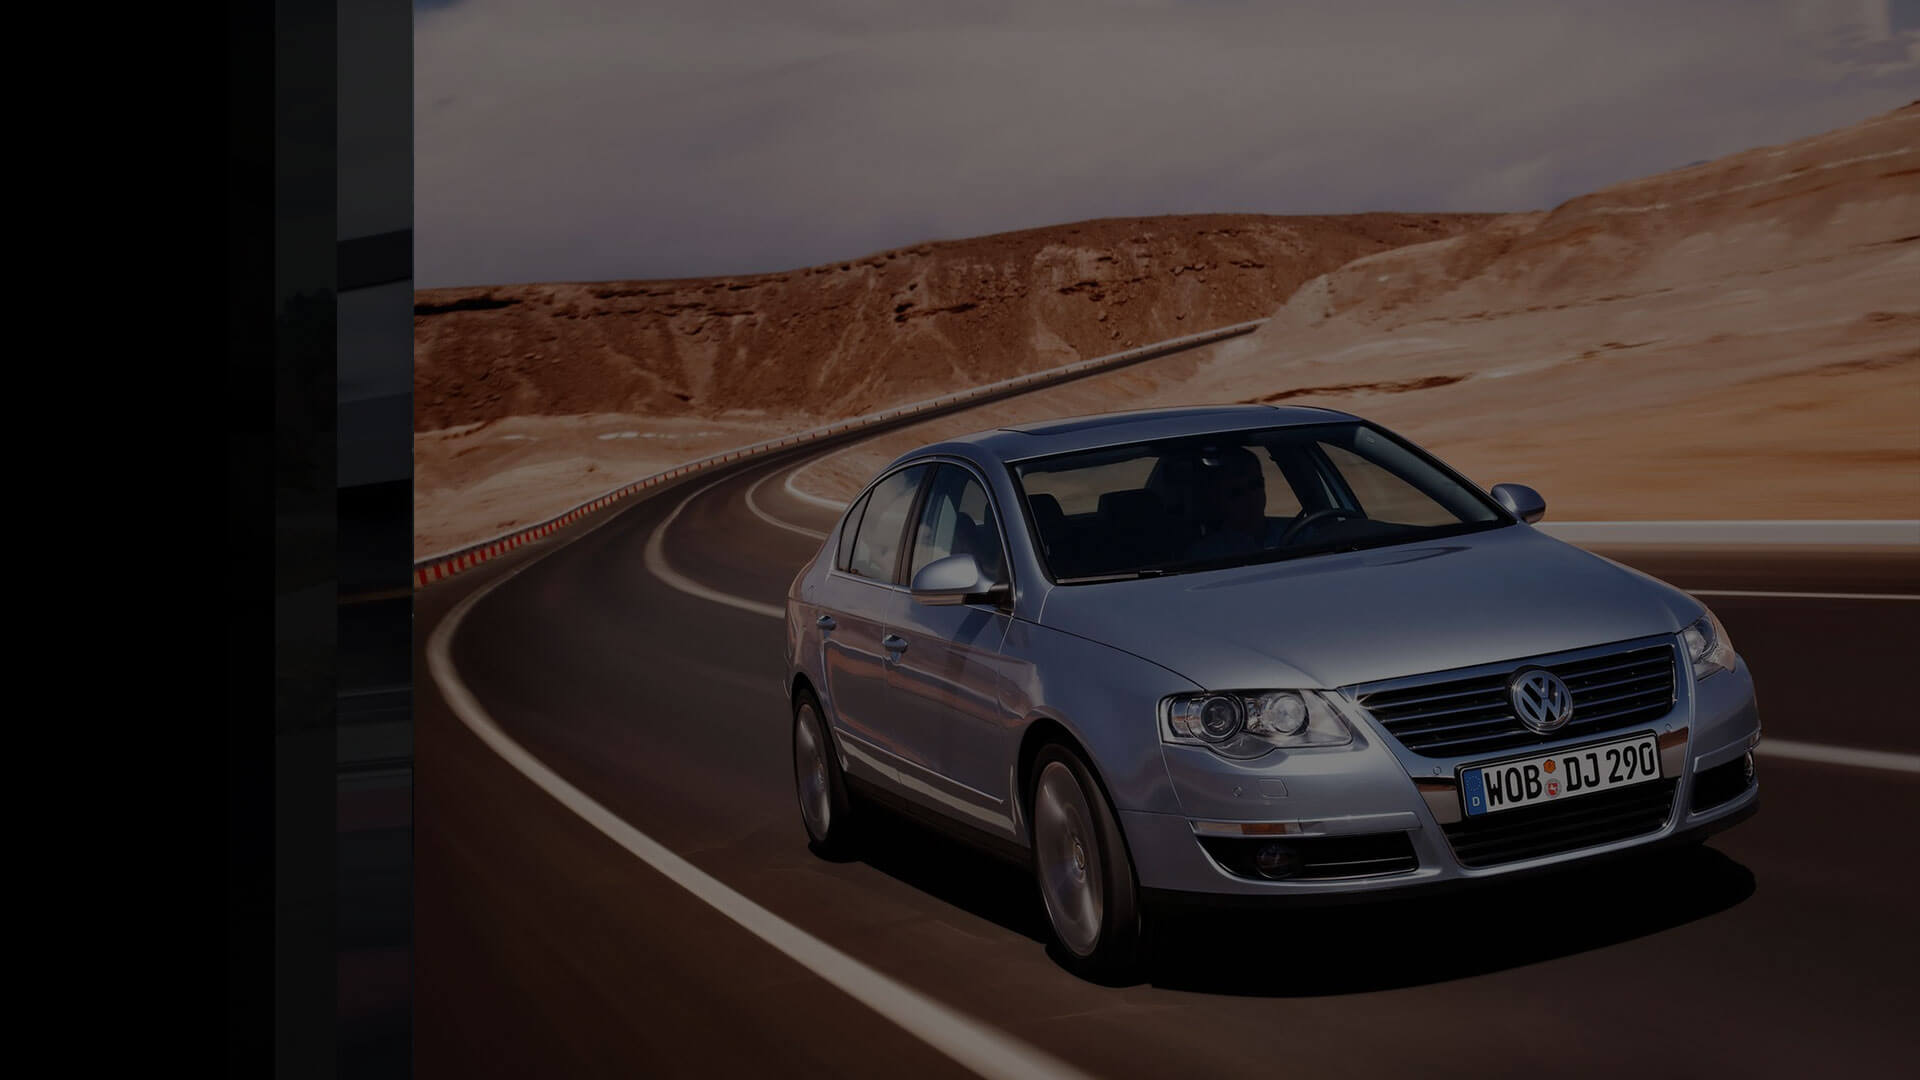 Volkswagen Passat B6 | Carista OBD2 supported vehicles | See what's